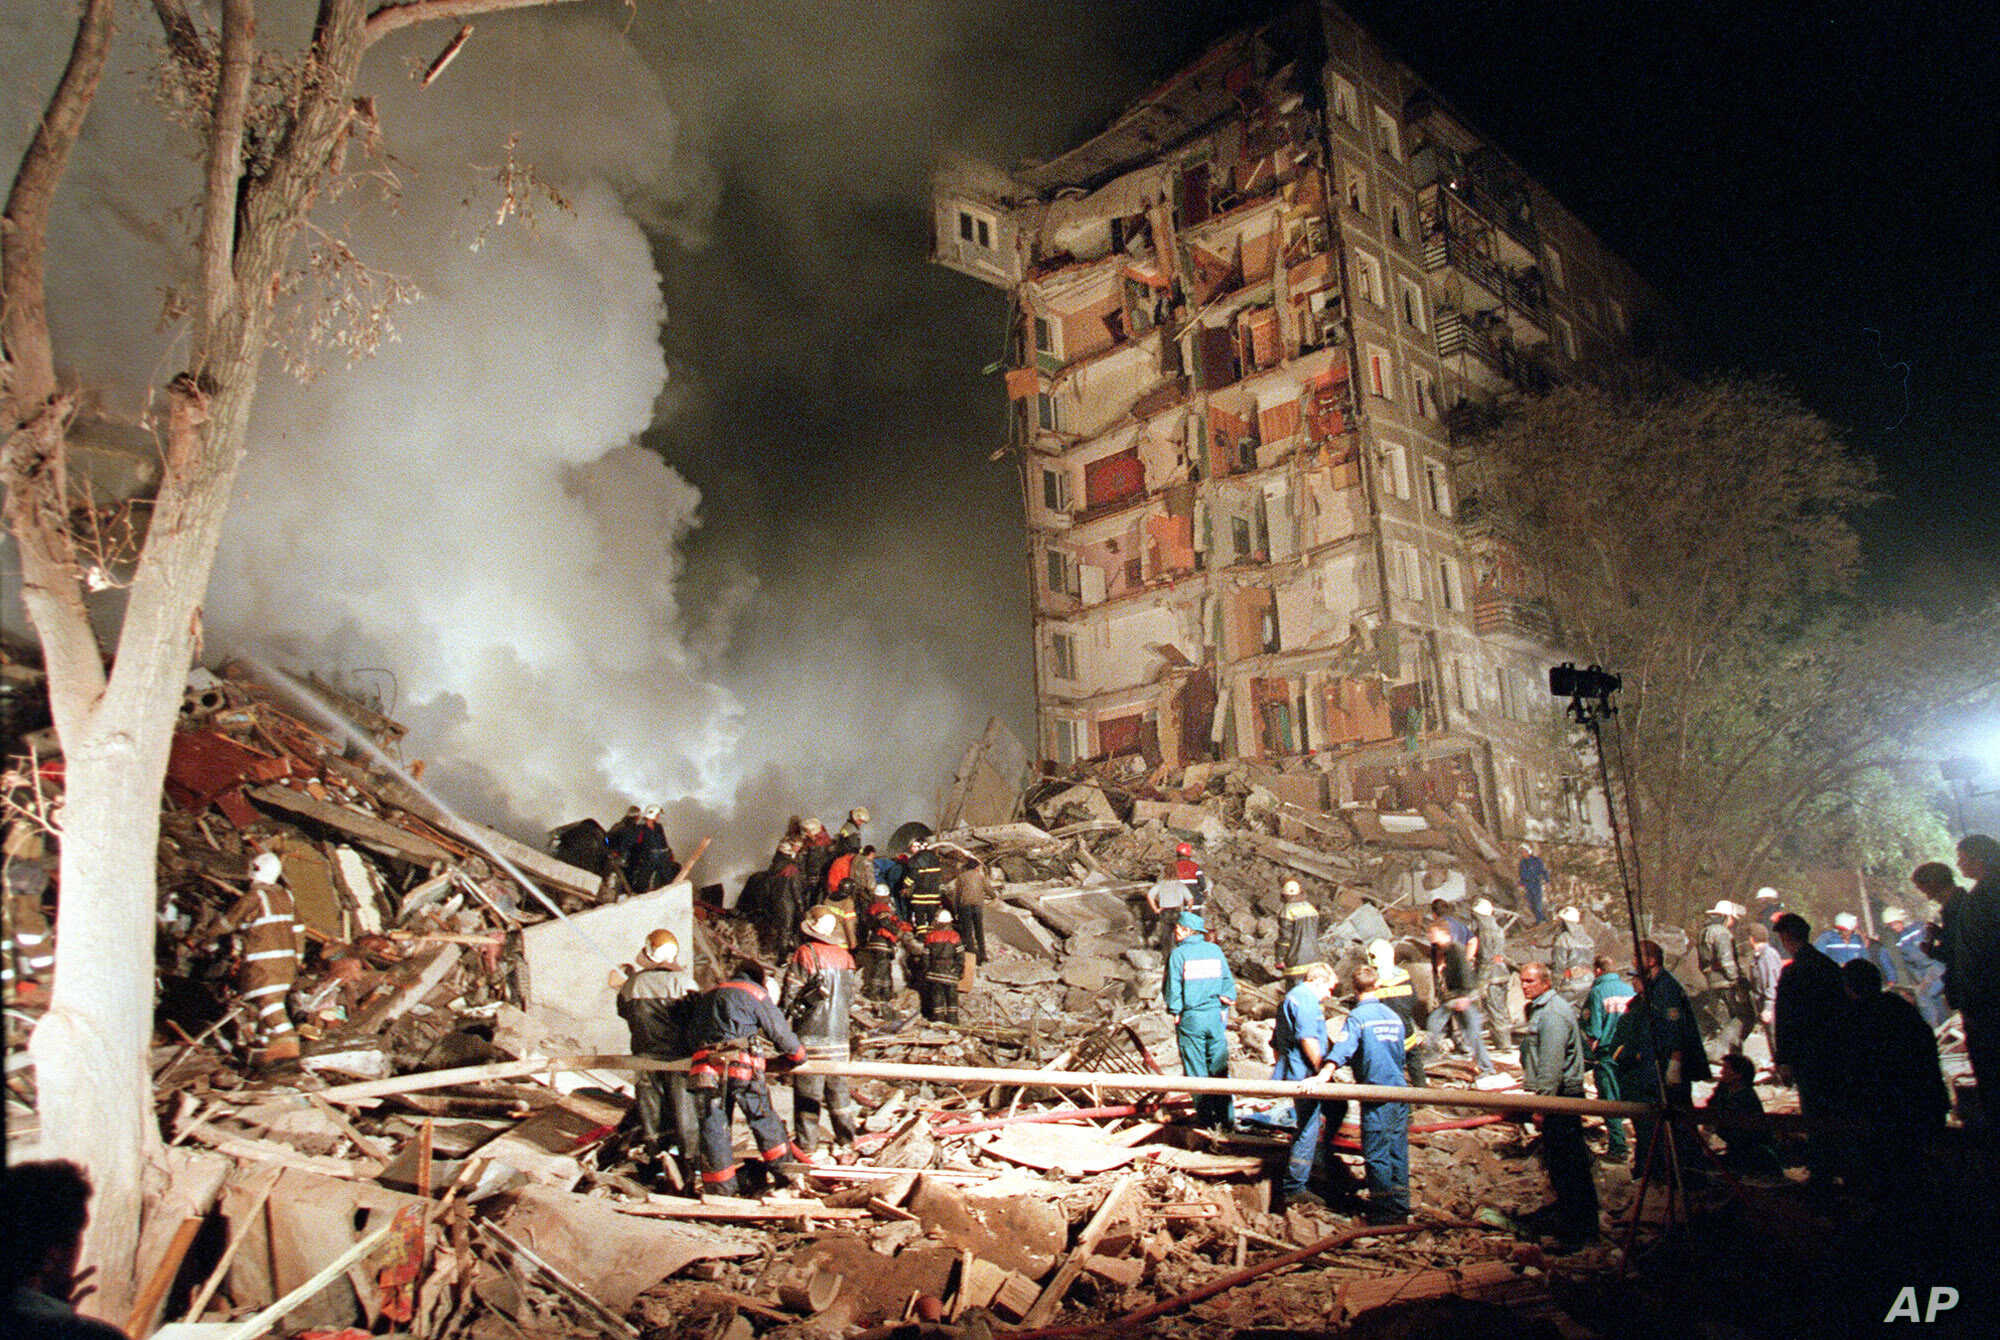 FILE - Rescuers and firefighters work at the site of a massive explosion that destroyed a nine-story apartment building in the southeastern part of Moscow in September 1999.